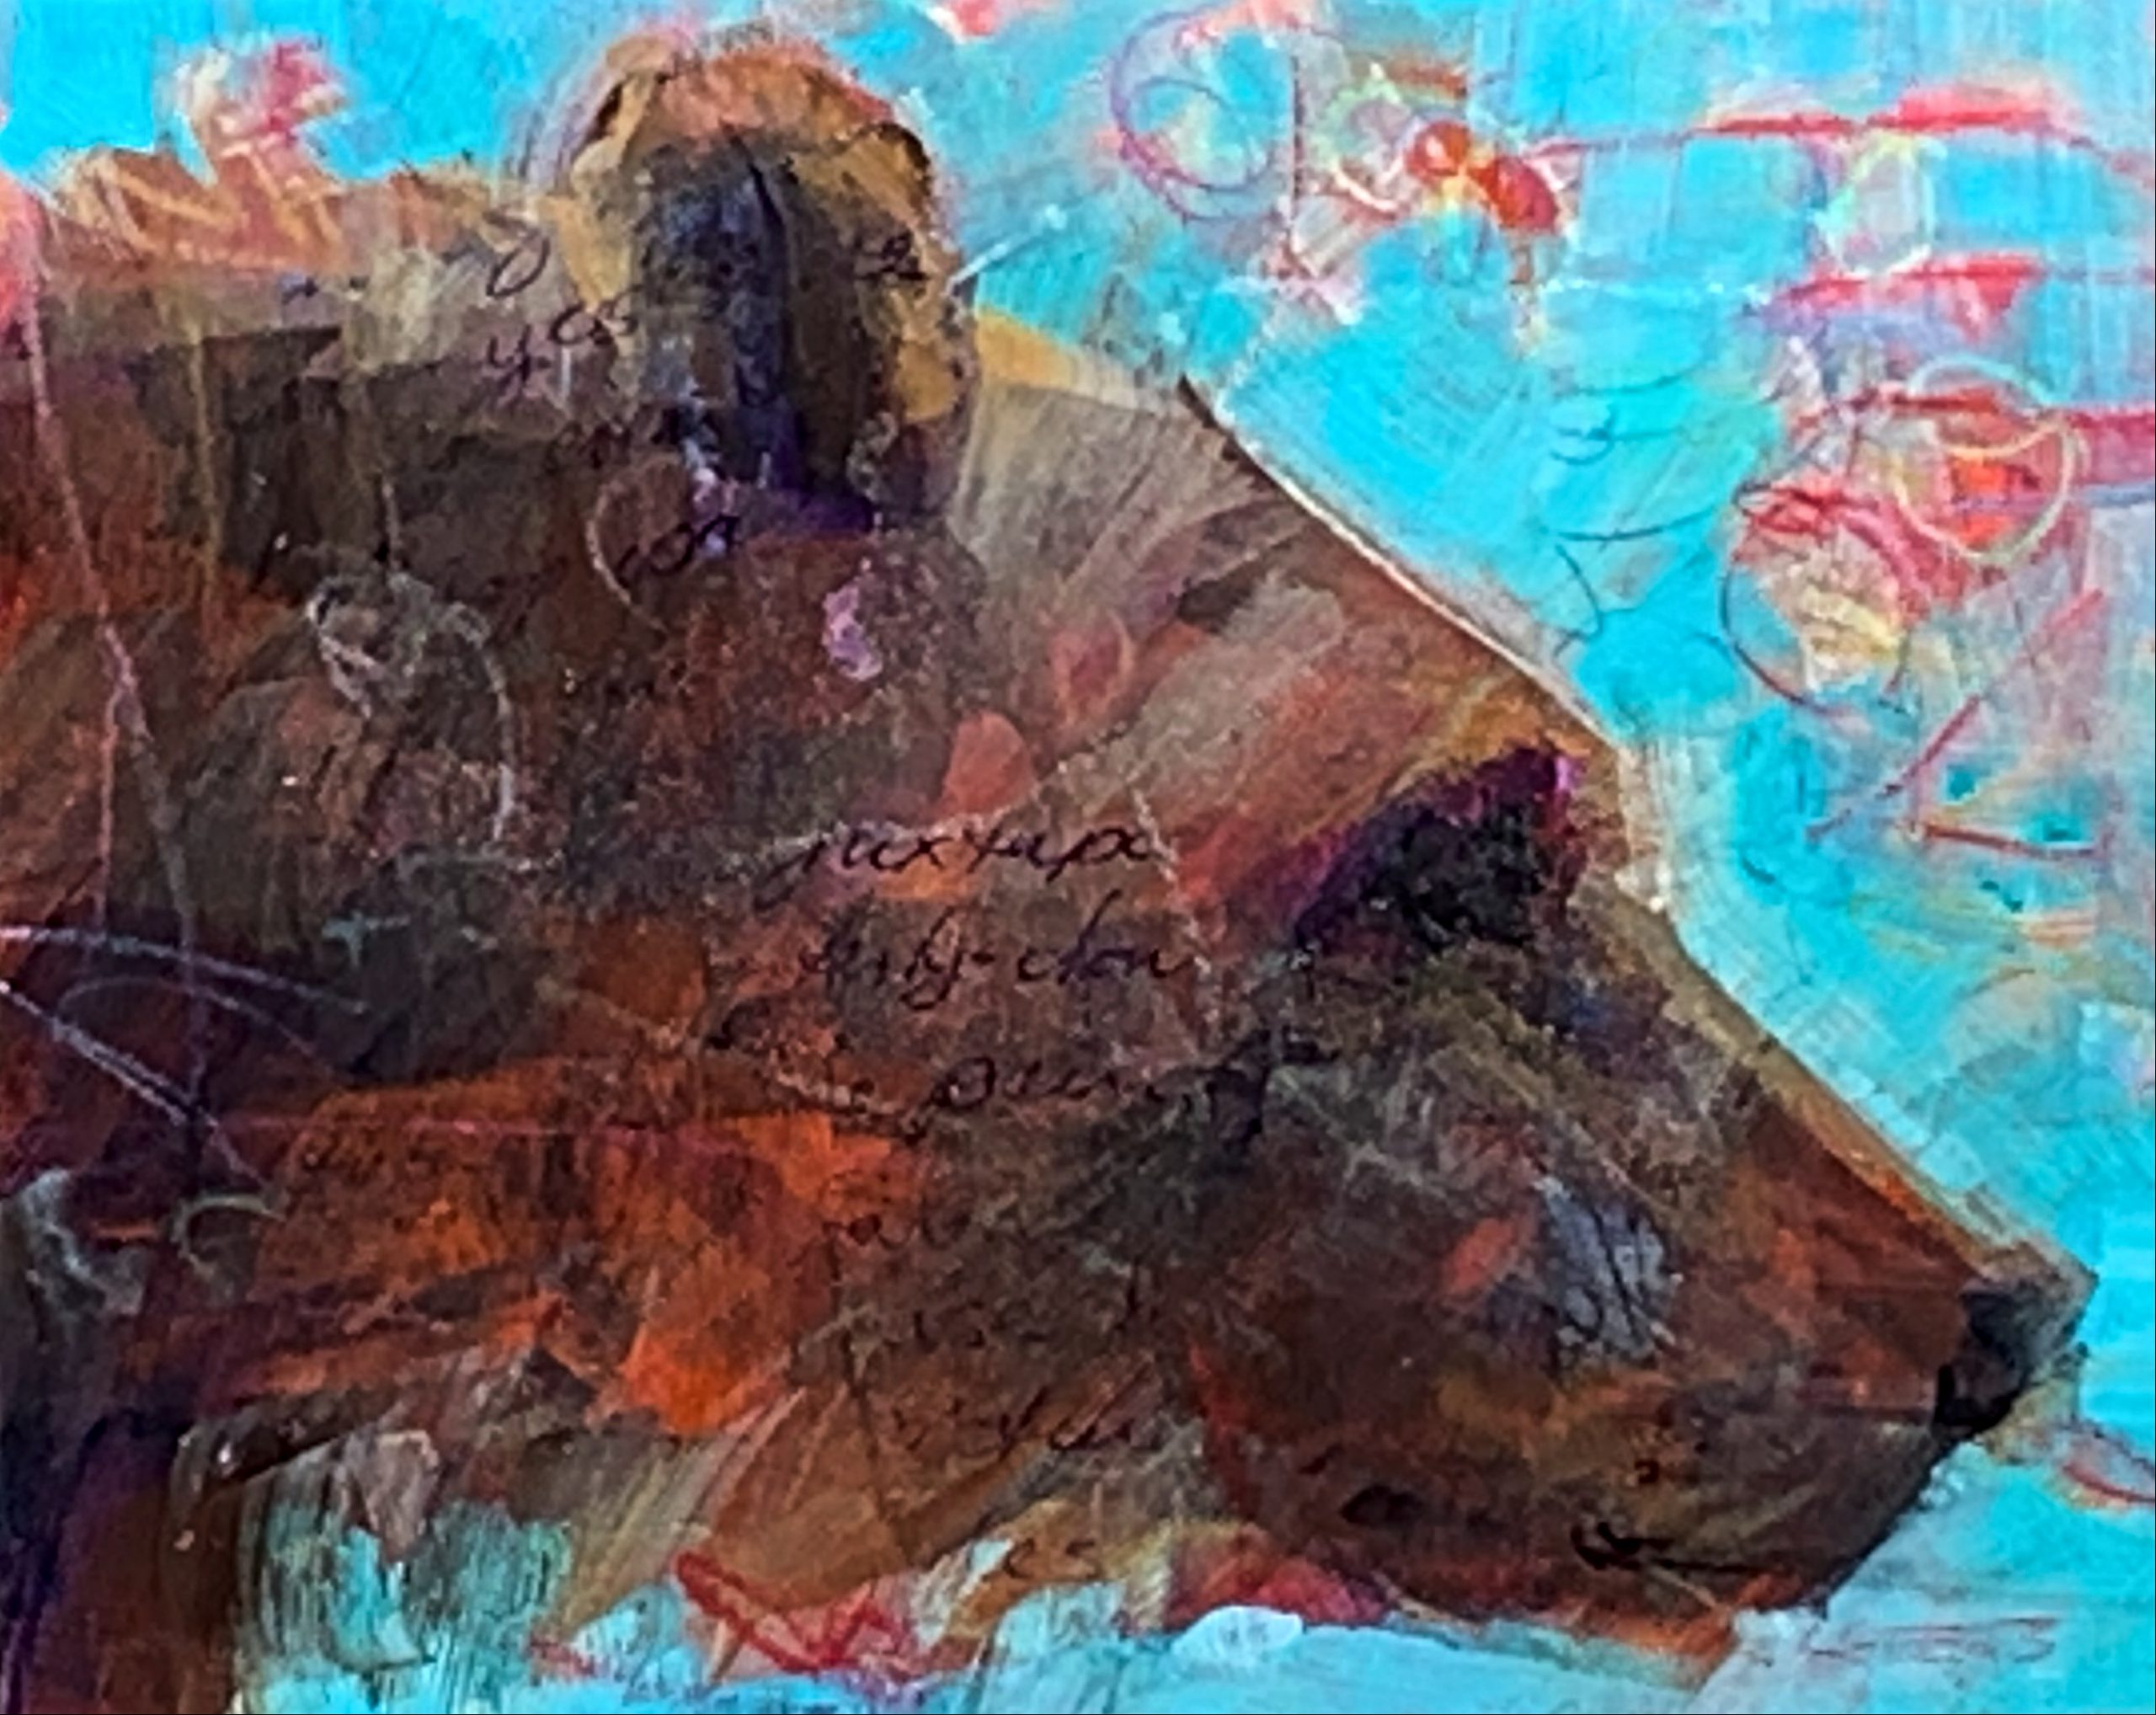 Ursa Major, mixed media bear painting by Connie Geerts | Effusion Art Gallery + Cast Glass Studio, Invermere BC